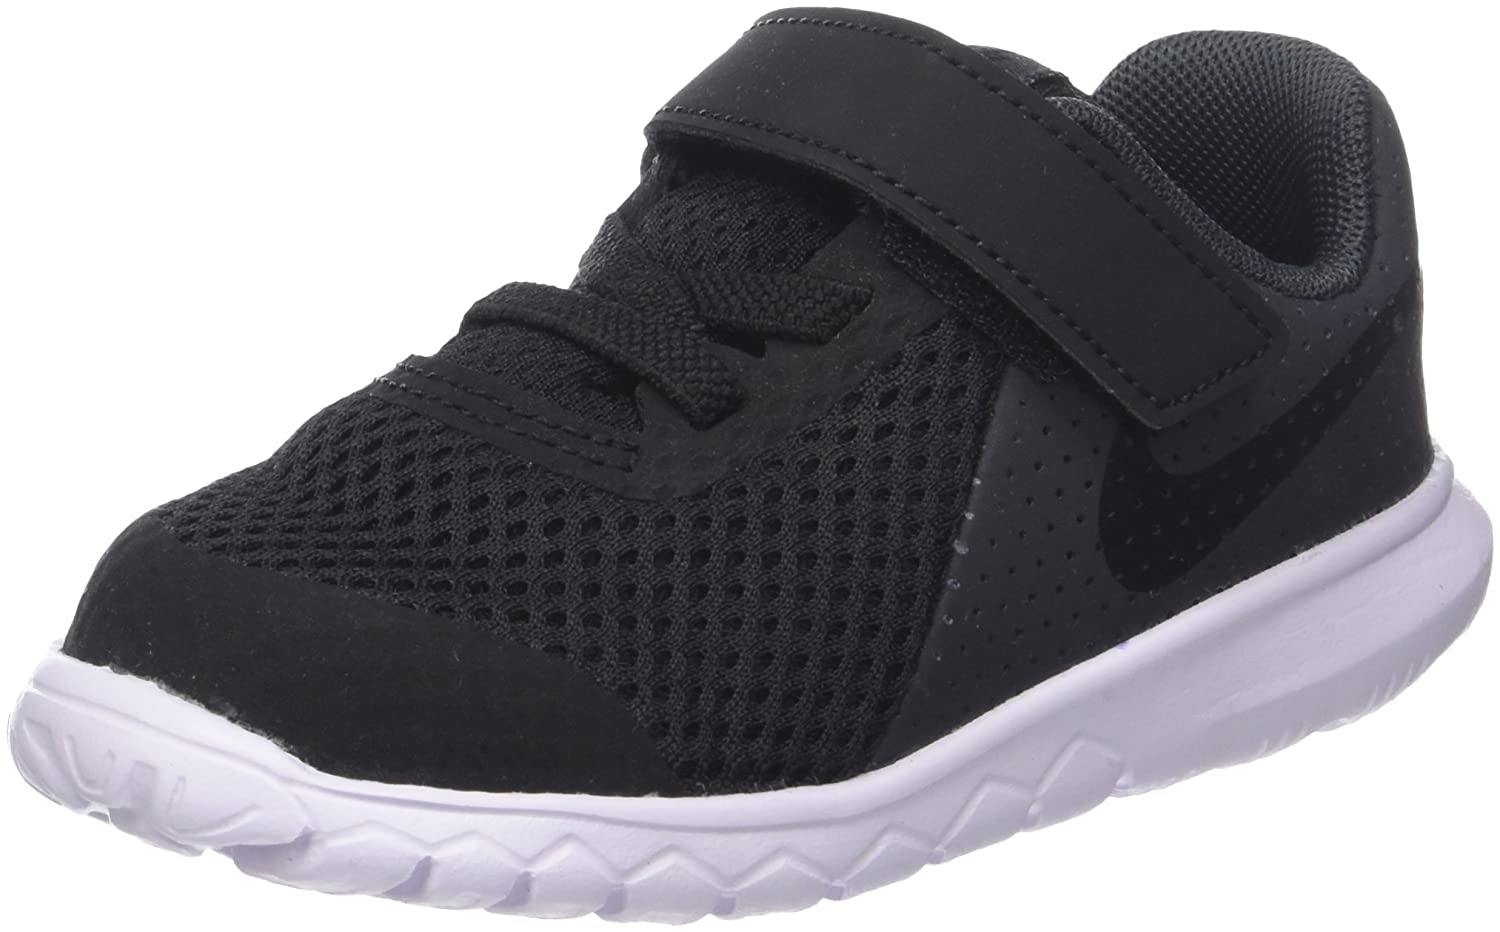 NIKE Baby Boy's Flex Experience 5 Athletic Shoe B0059G176Q 10 Toddler M|Black/Black-anthracite-white